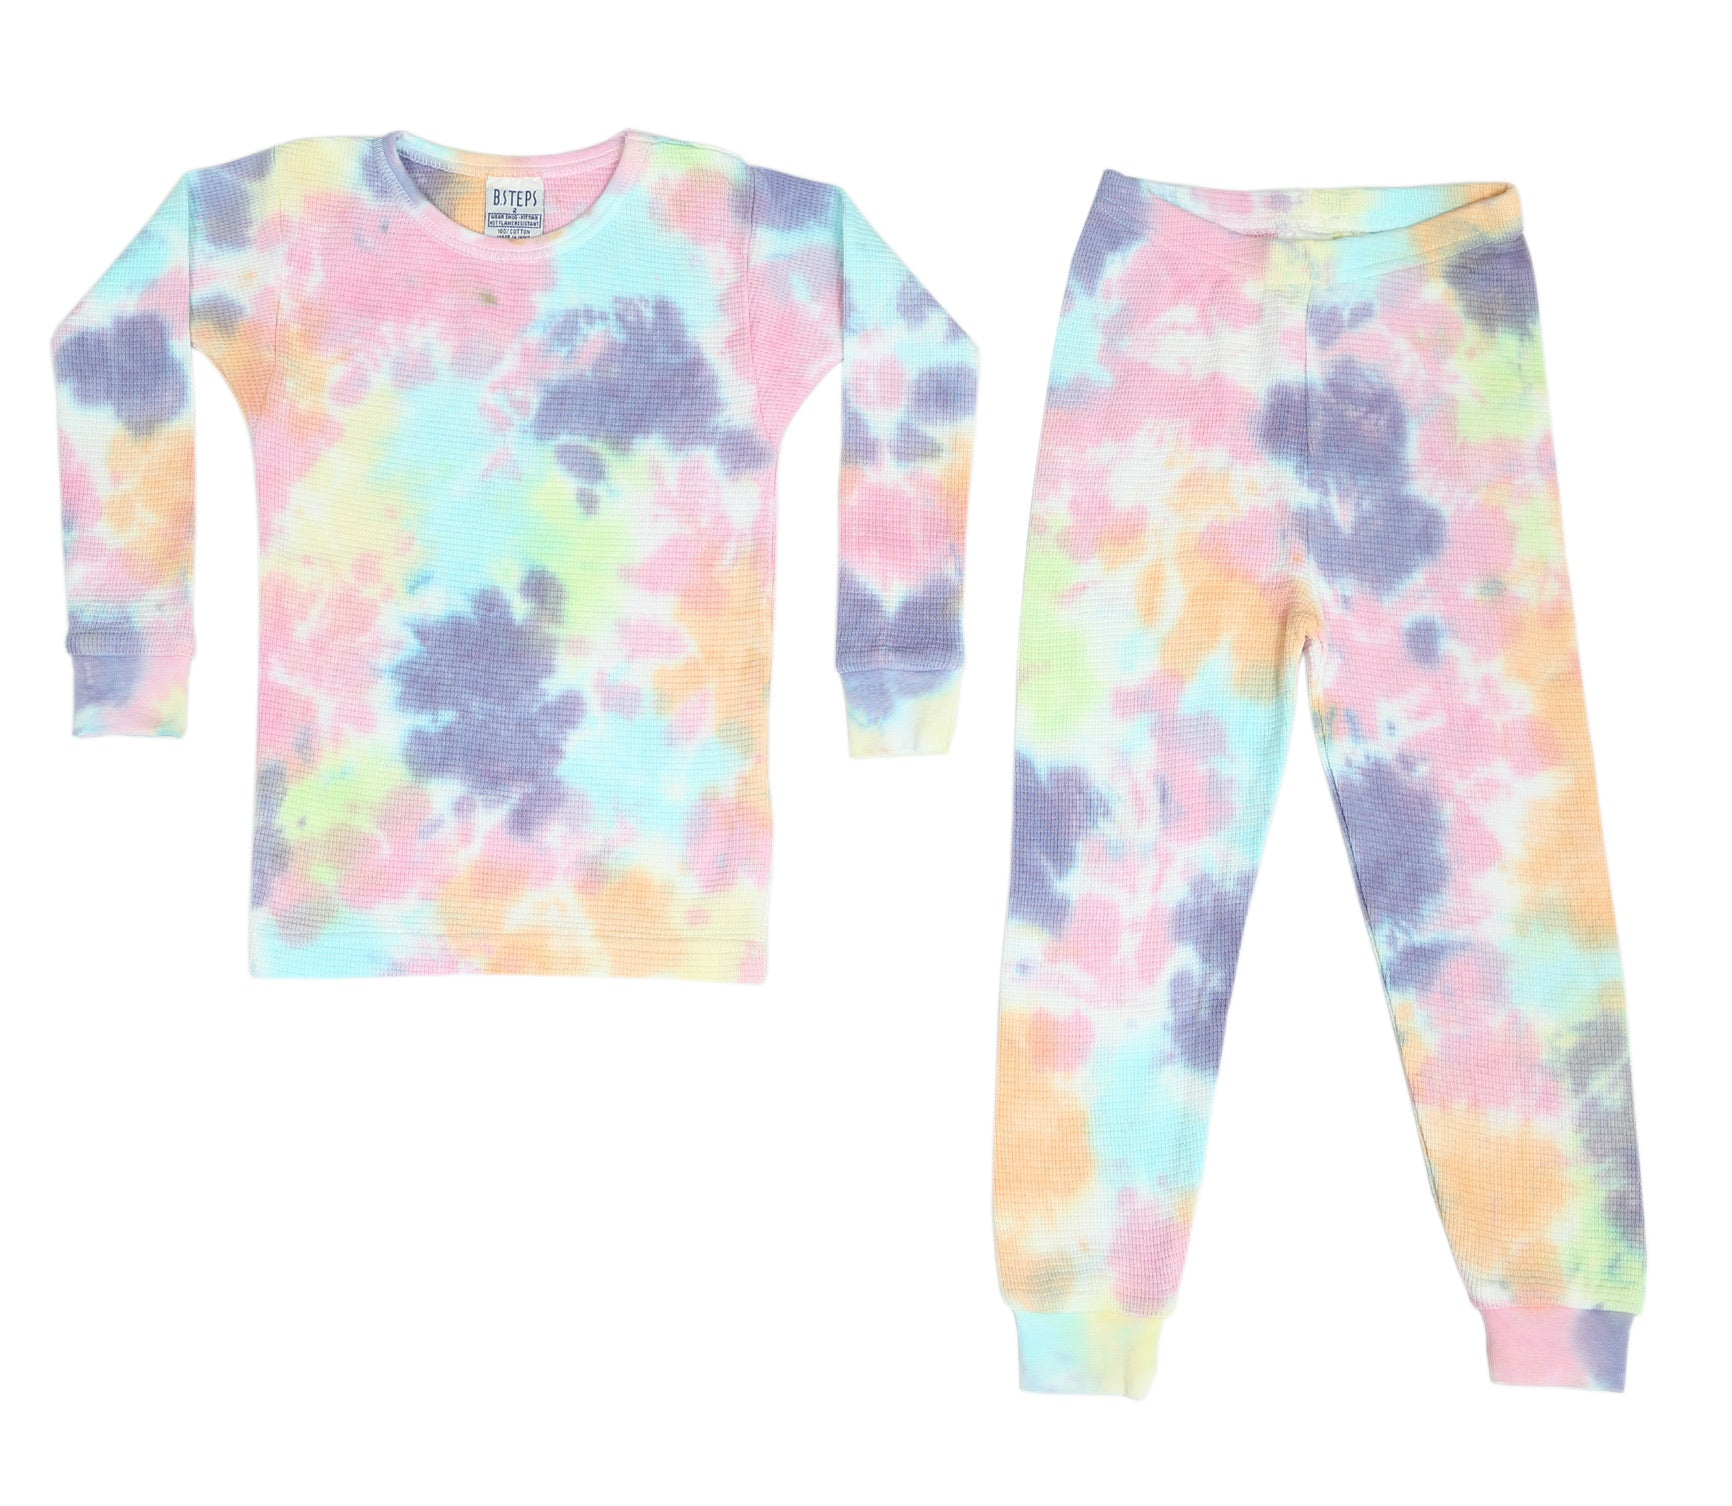 Thermal Tie Dye Pajamas - Izzy (4092388900939)